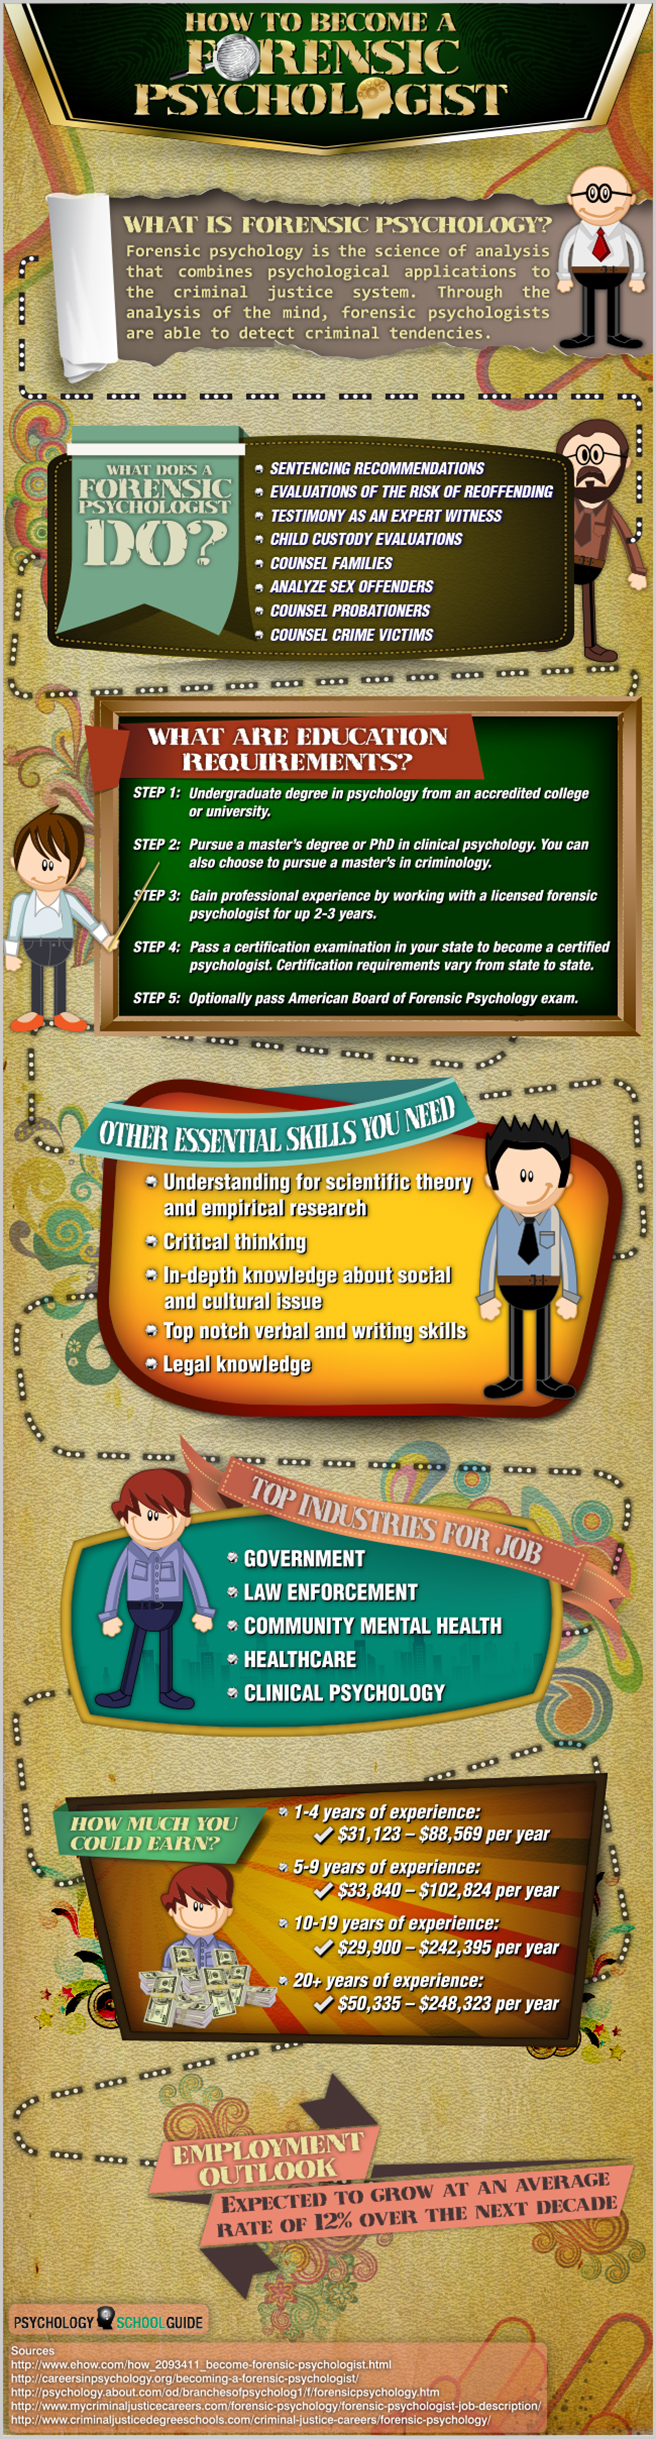 infographic  how to become a forensic psychologist